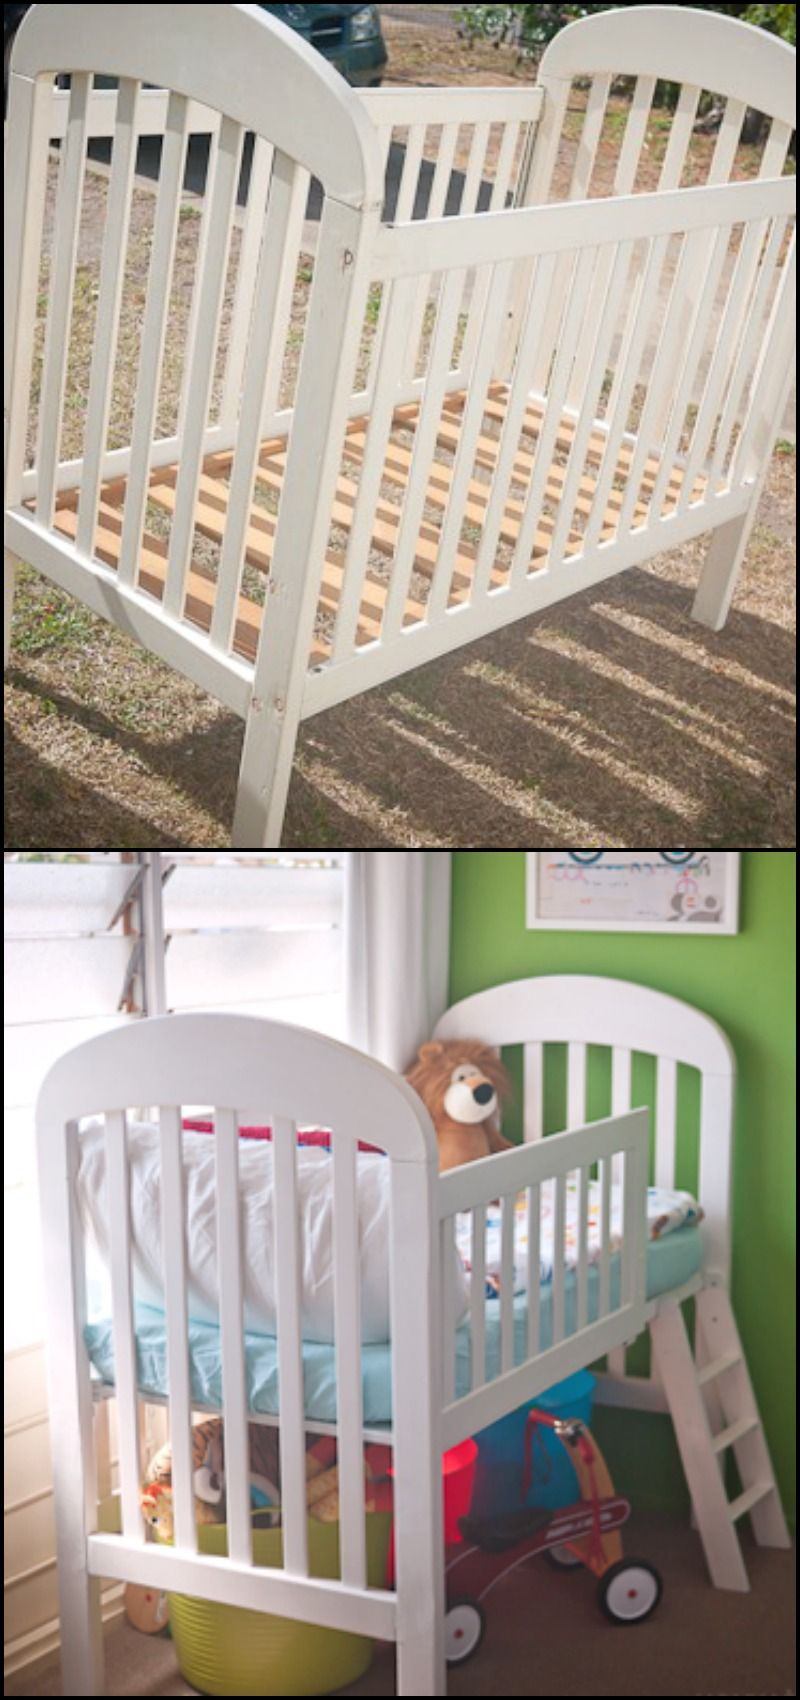 ddler into turn styles beautiful bed of cribs decoration crib designs beds ikea bedroom does unique that how toddler